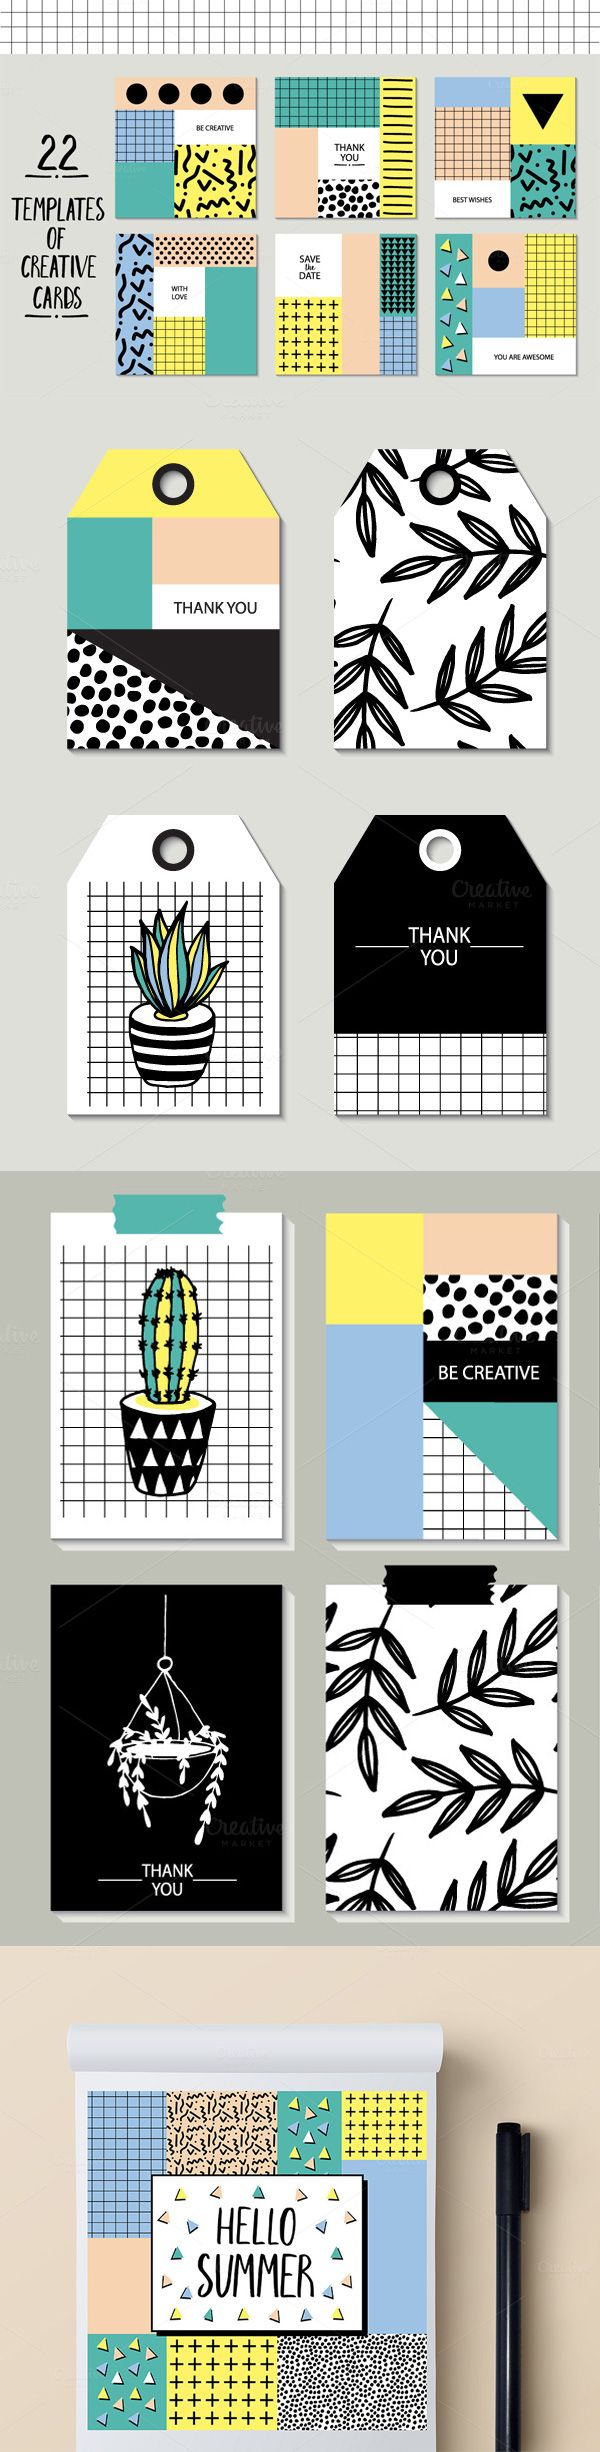 Sticker graphic design software - 22 Templates Of Creative Cards 80s